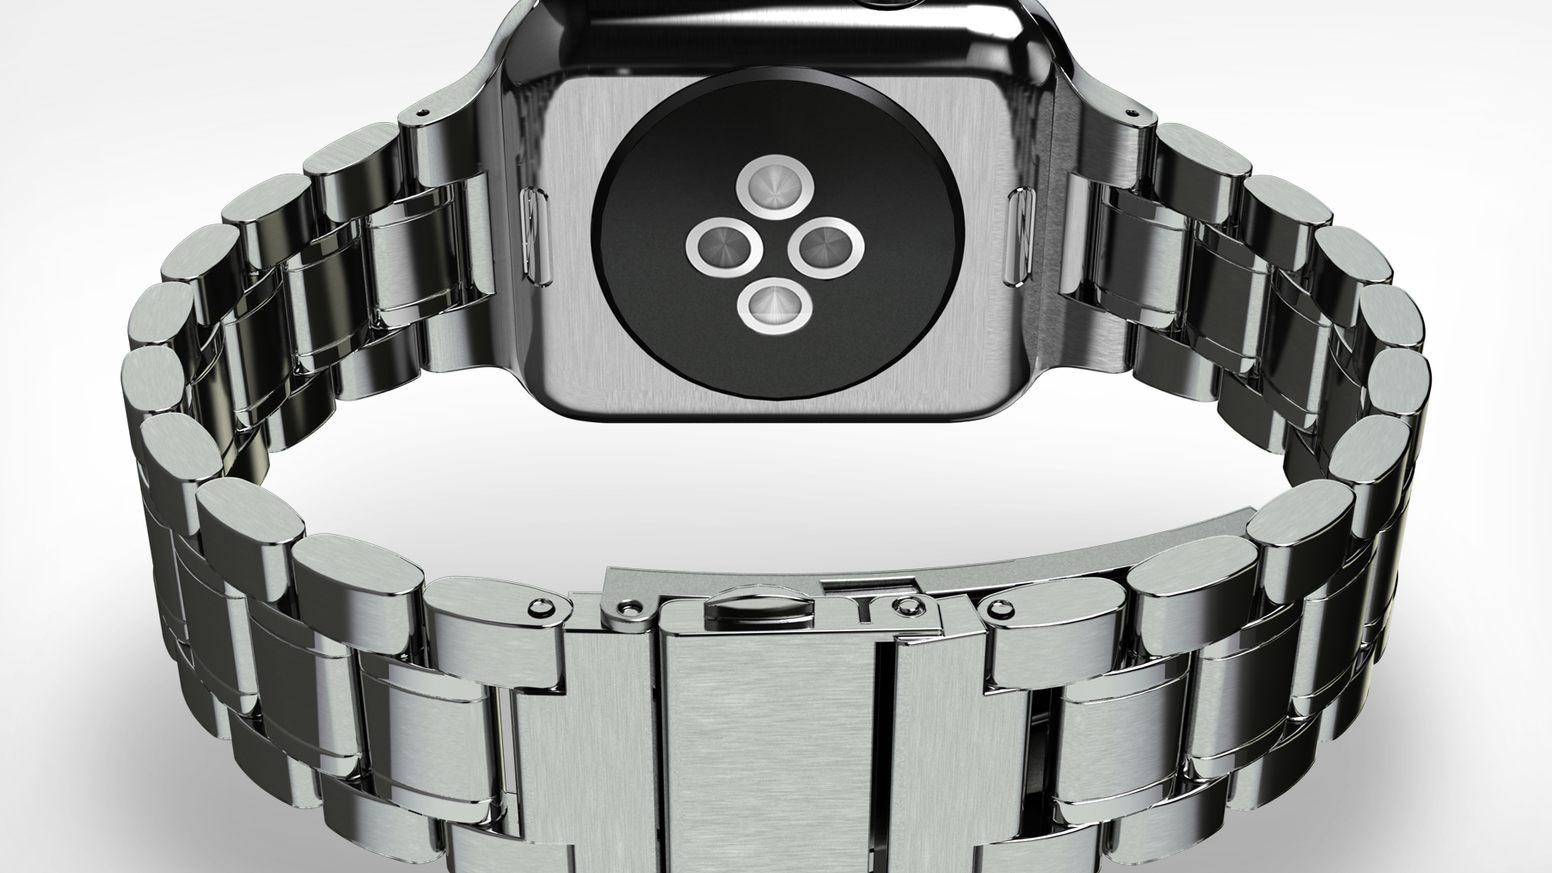 Get The Stainless Steel Link Bracelet Band That Your Le Watch Truly Deserve